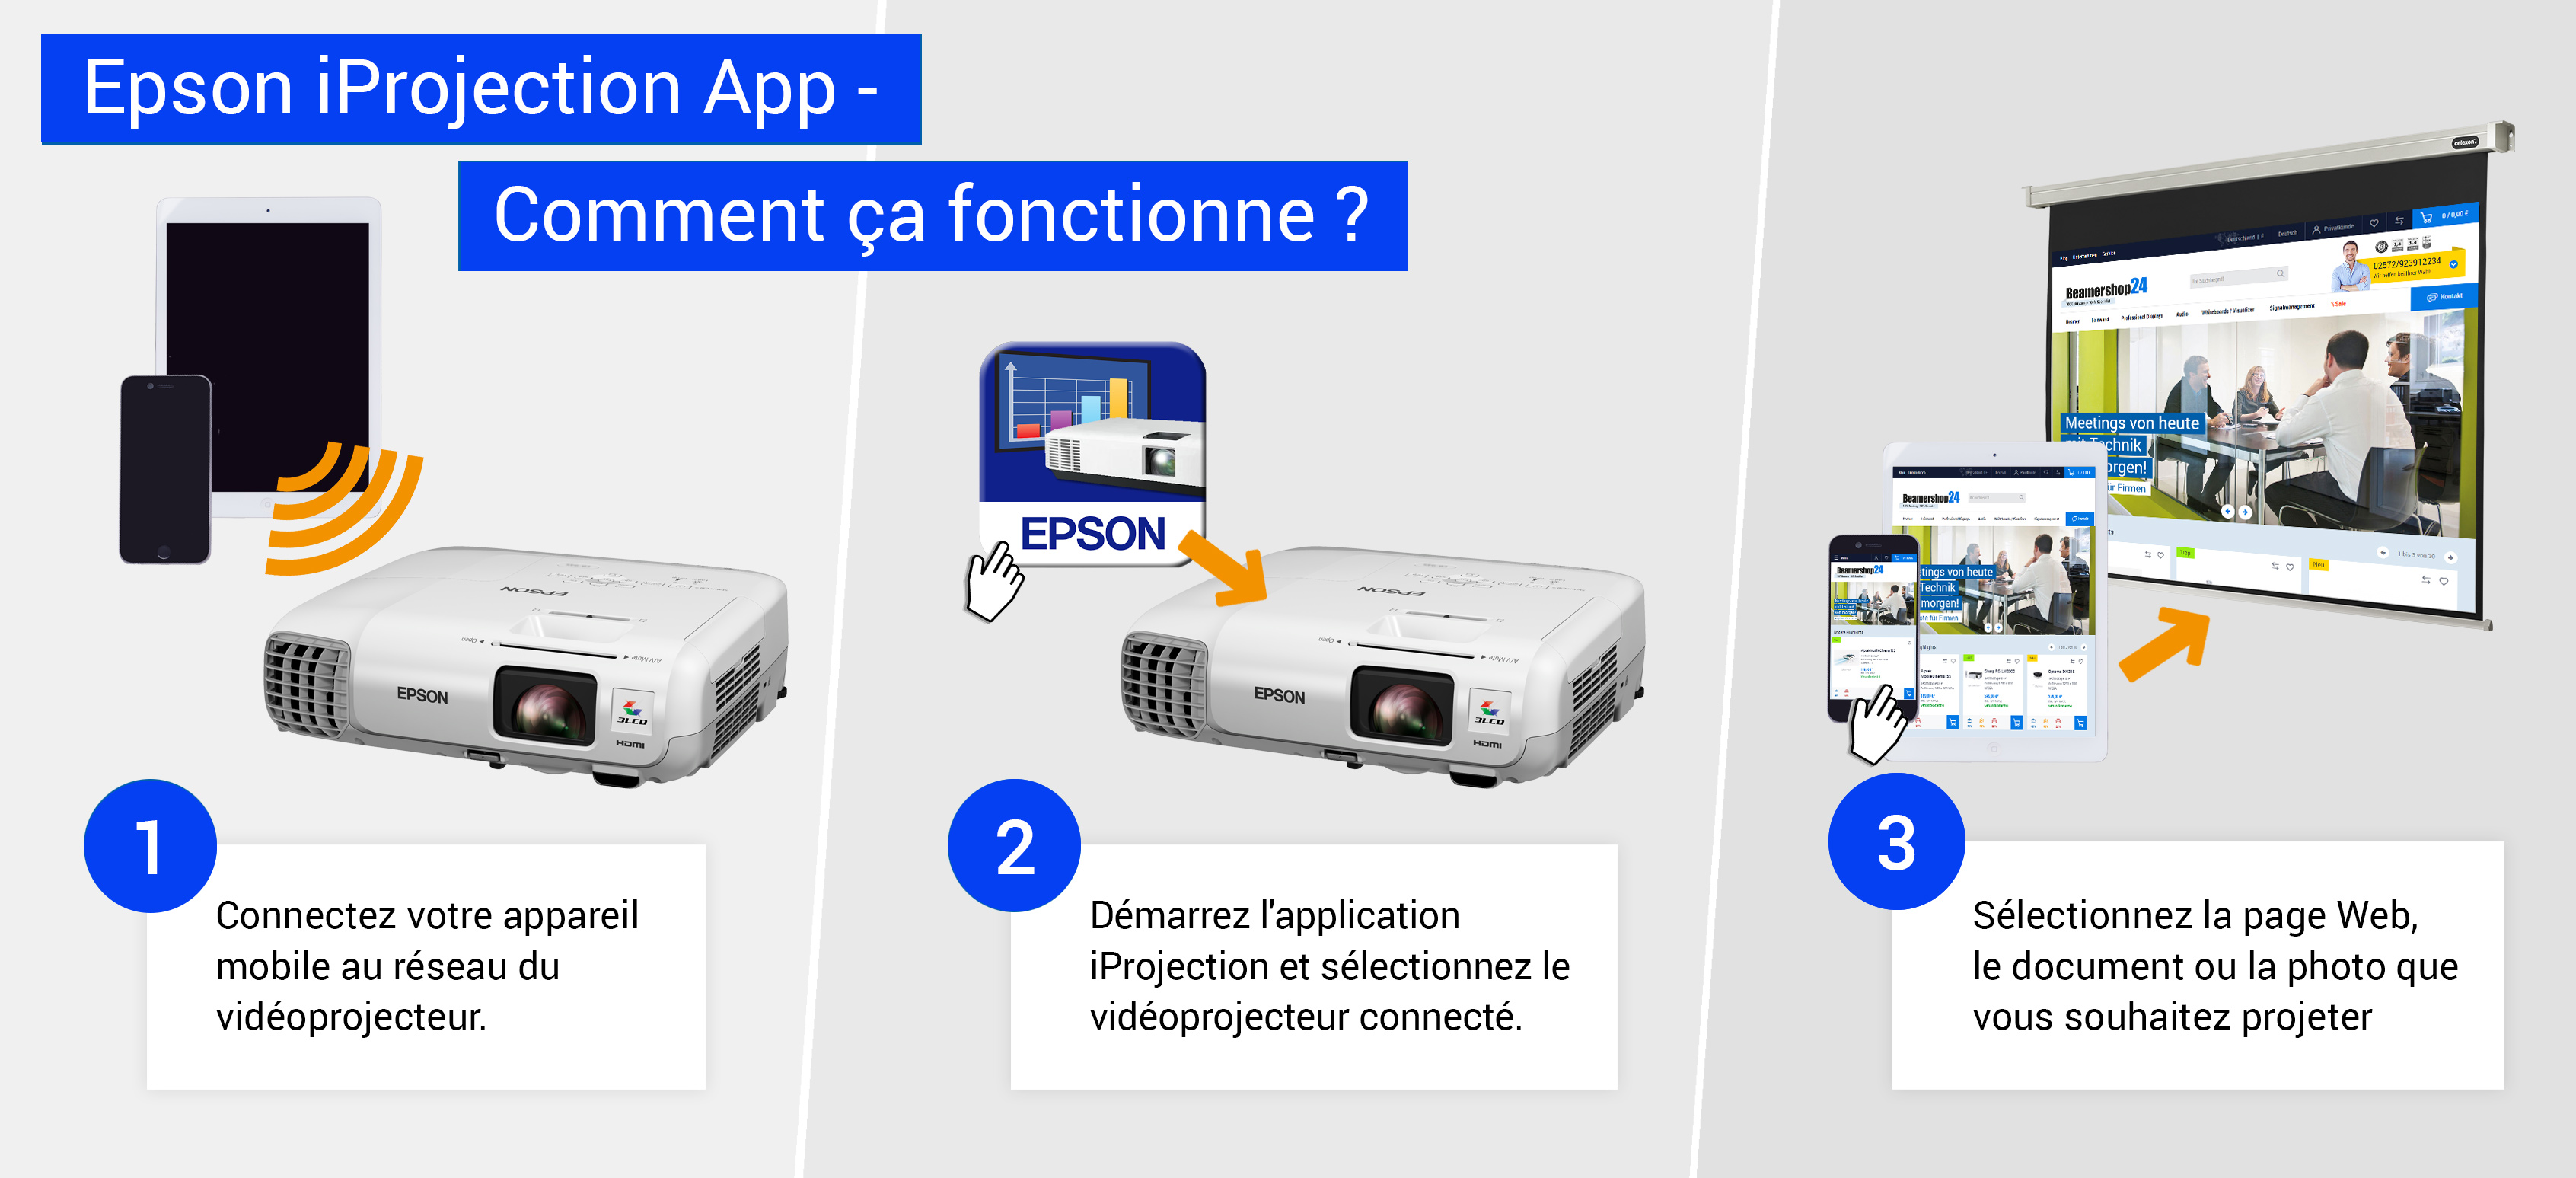 Fonctionnalité de l'application Epson iProjection